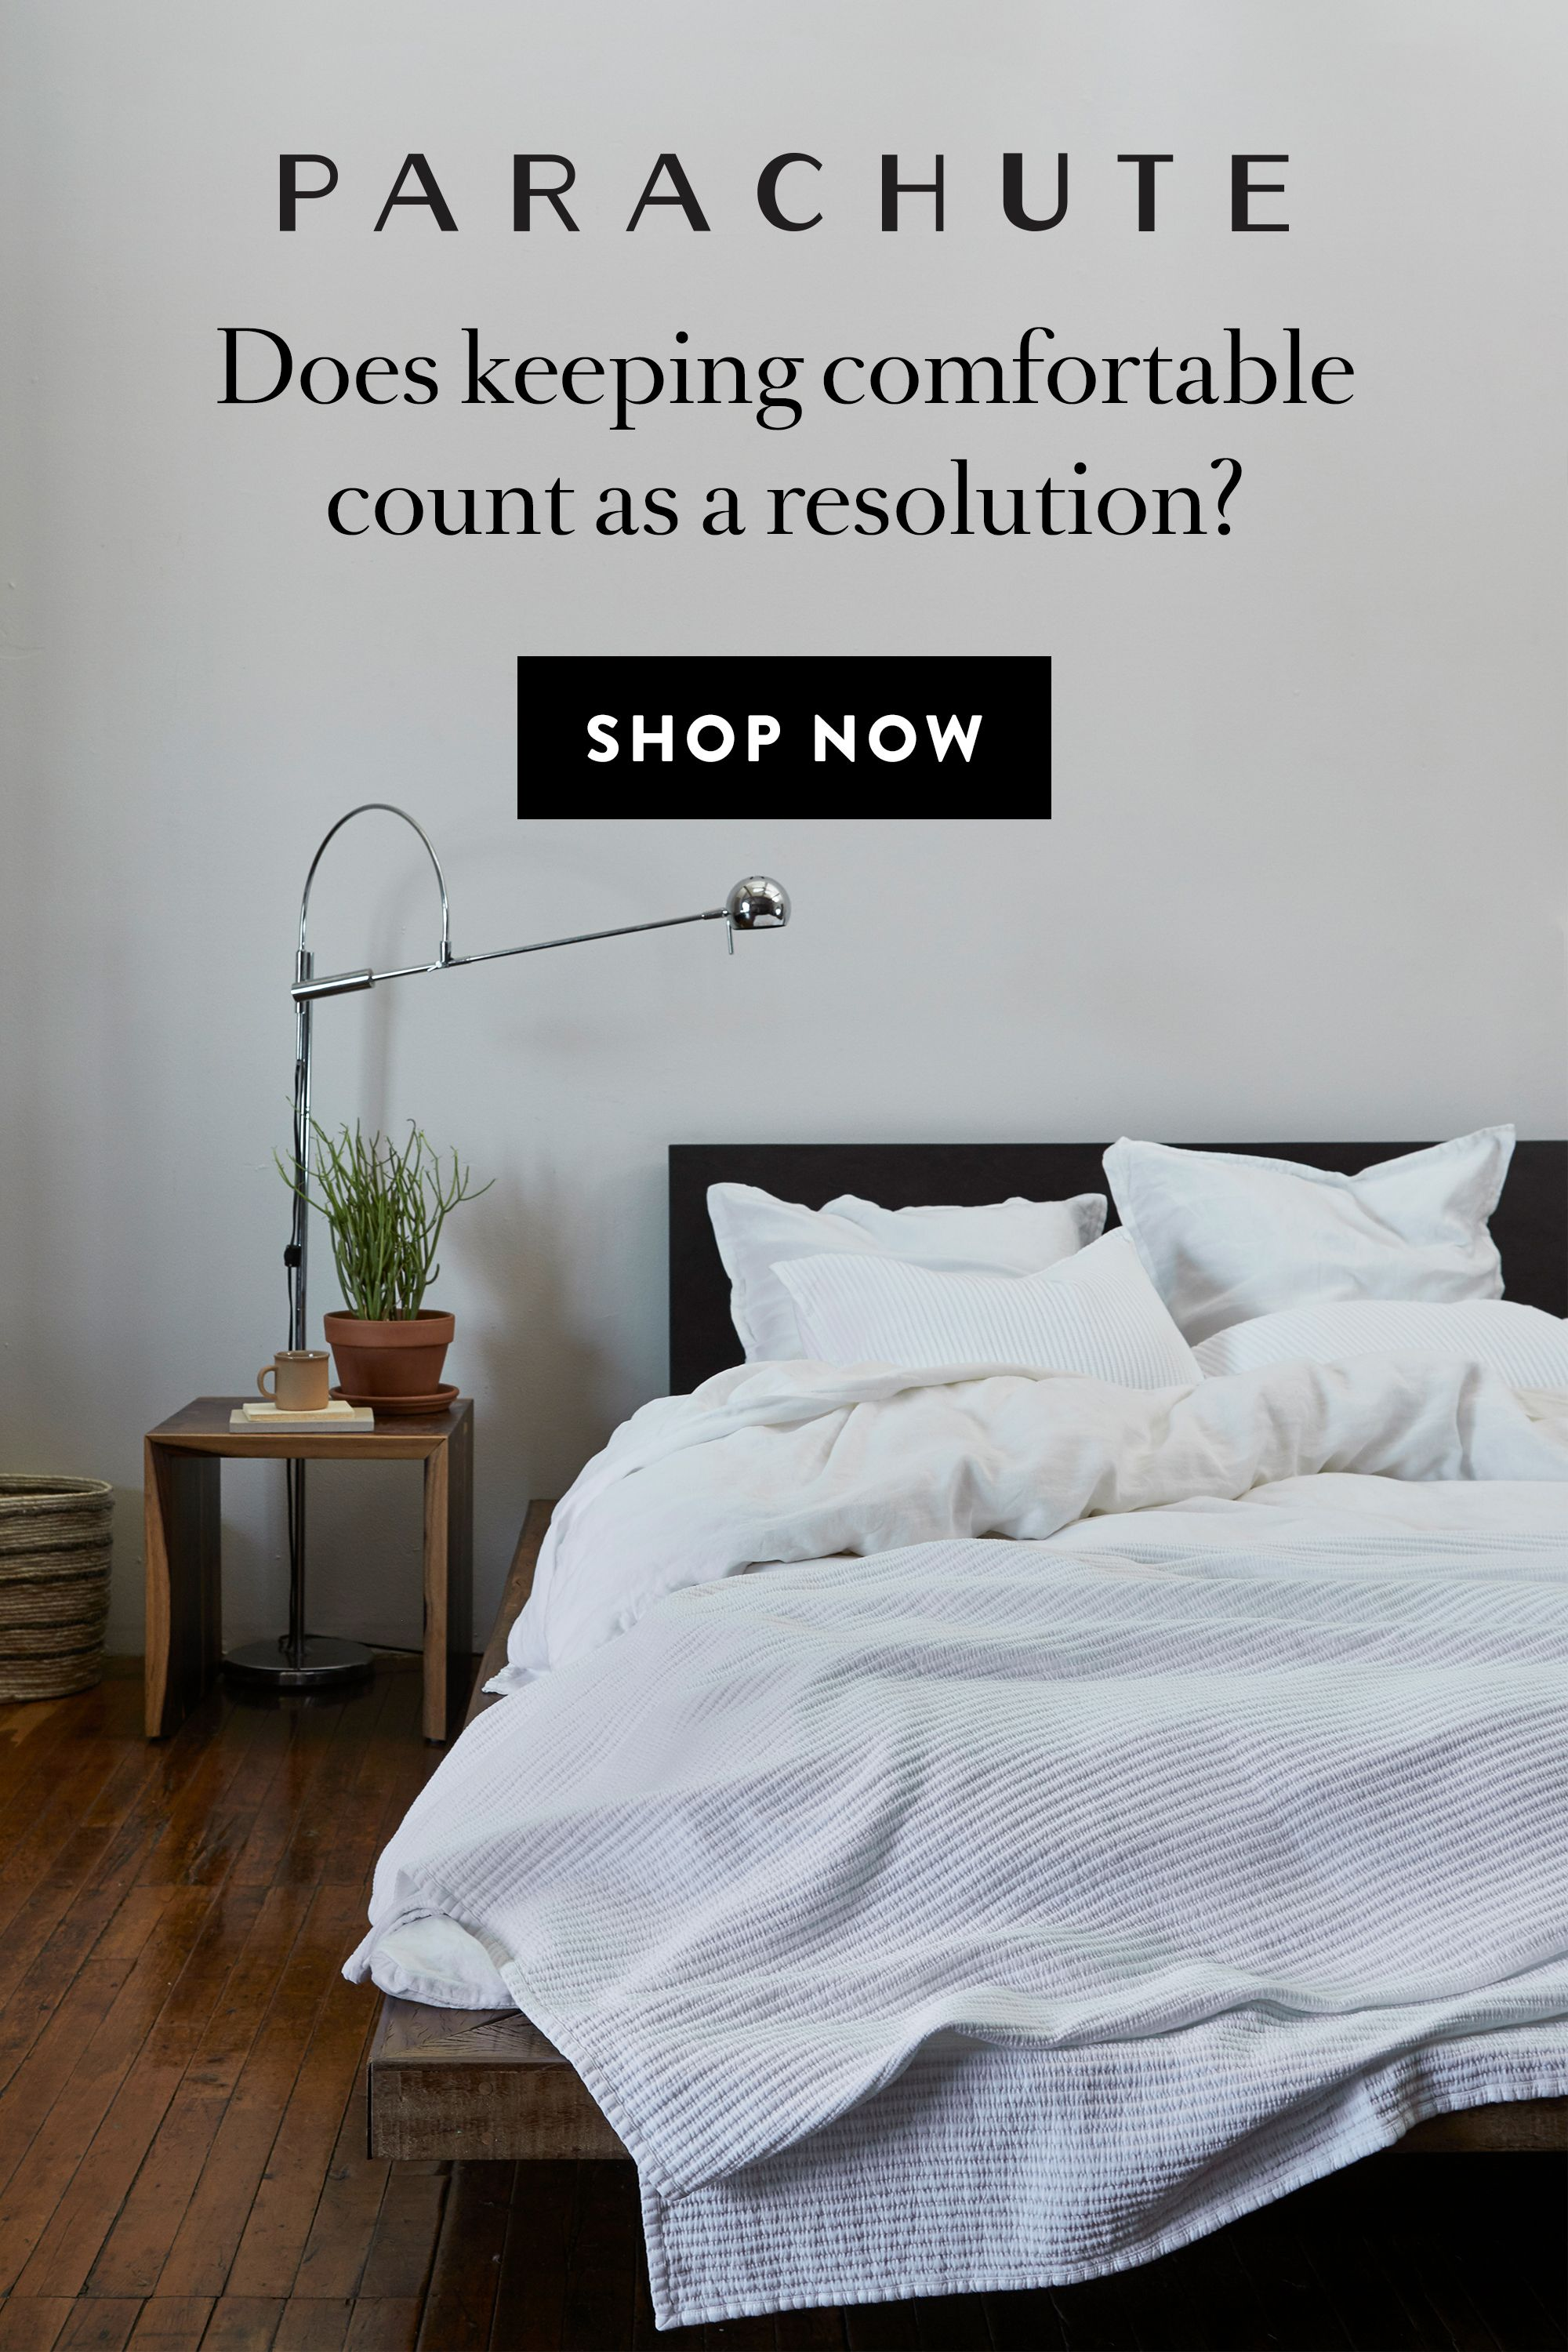 We Make Modern Bedding And Bath Essentials For A More Comfortable Home Discover Our Collections Make Your Bed Modern Bed Bedding And Bath